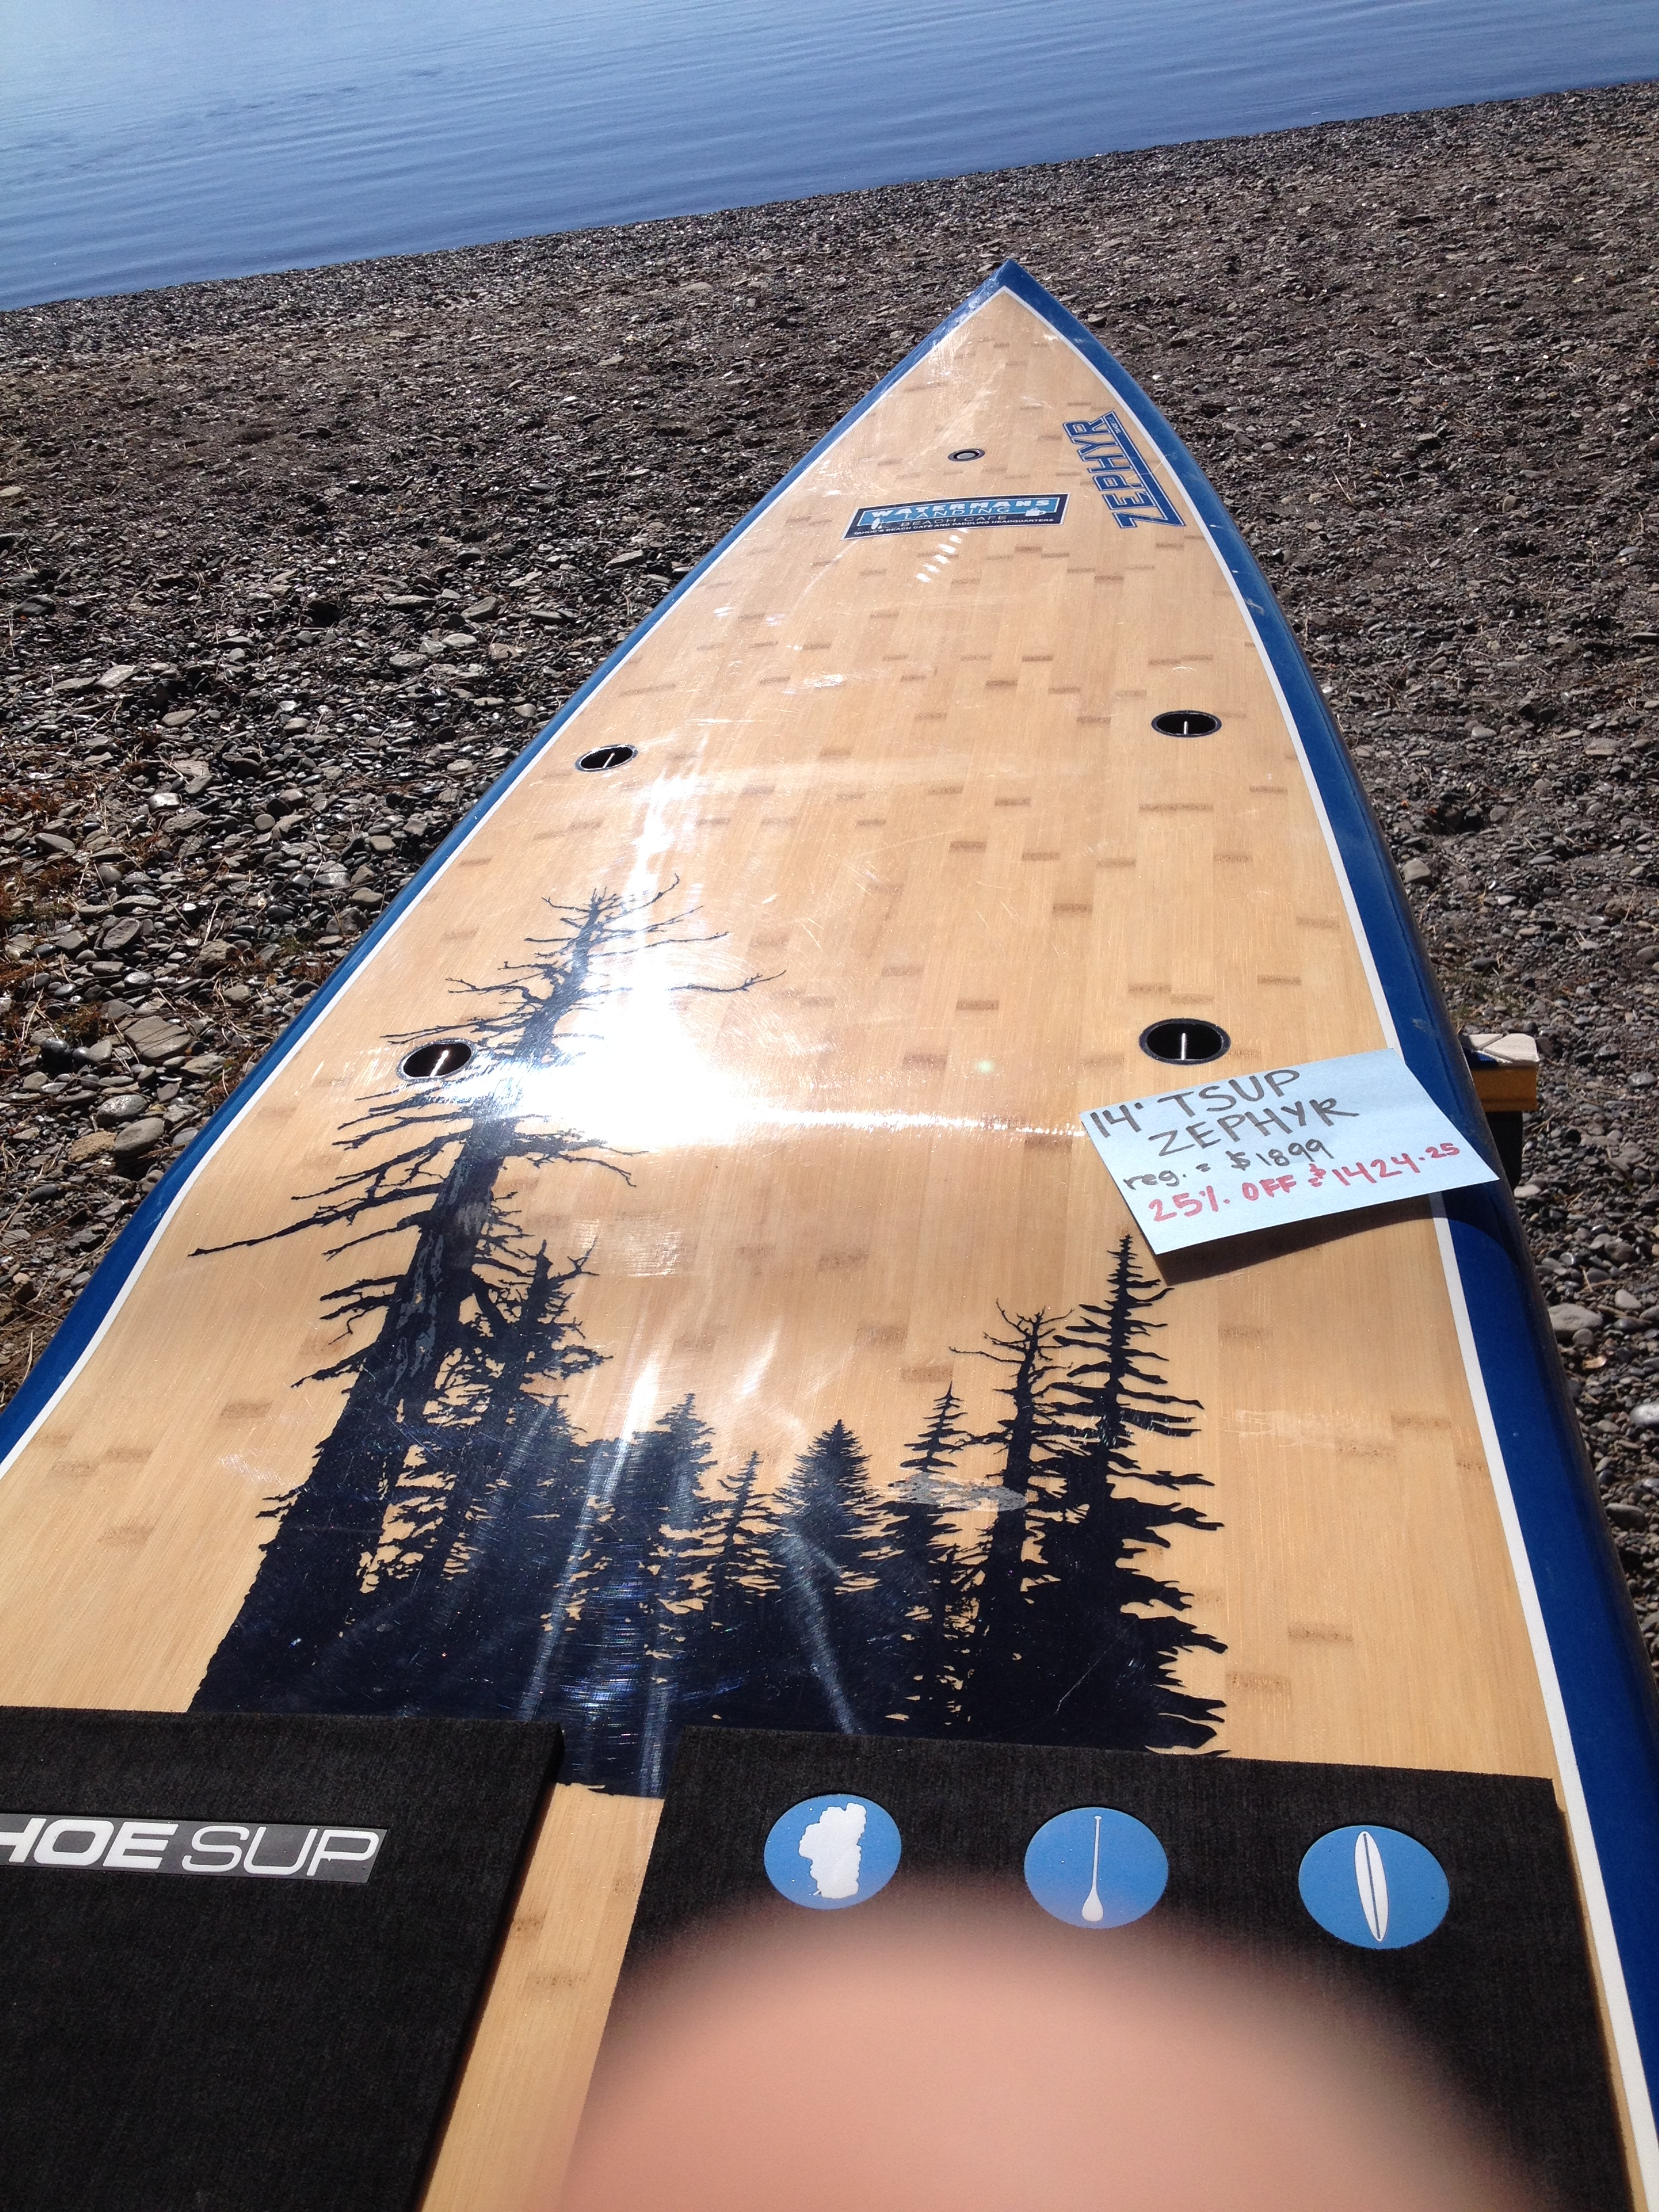 Tahoe Sup Zephyr 14 For Sale >> SALES AND DEALS | Waterman's Landing Beach Cafe